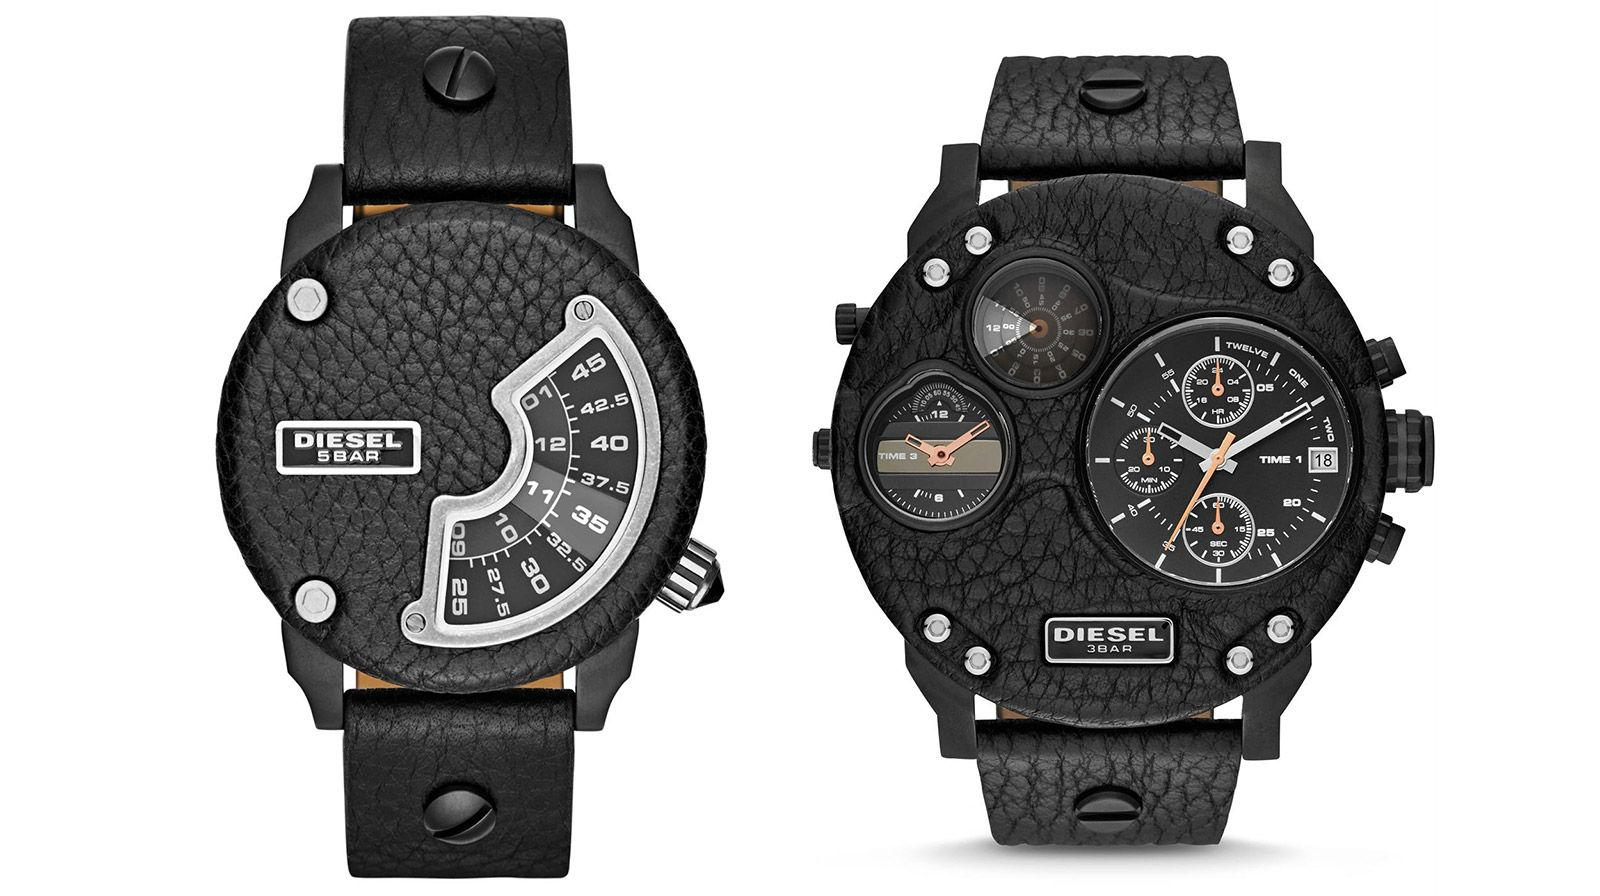 Diesel's limited-edition Biker series watches have had their trimmed their faces with black leather, and fitted them with matching straps. The Mini Daddy offers a cool jump hour dial, while the Mr. Daddy has three time dials and chronograph functionality.